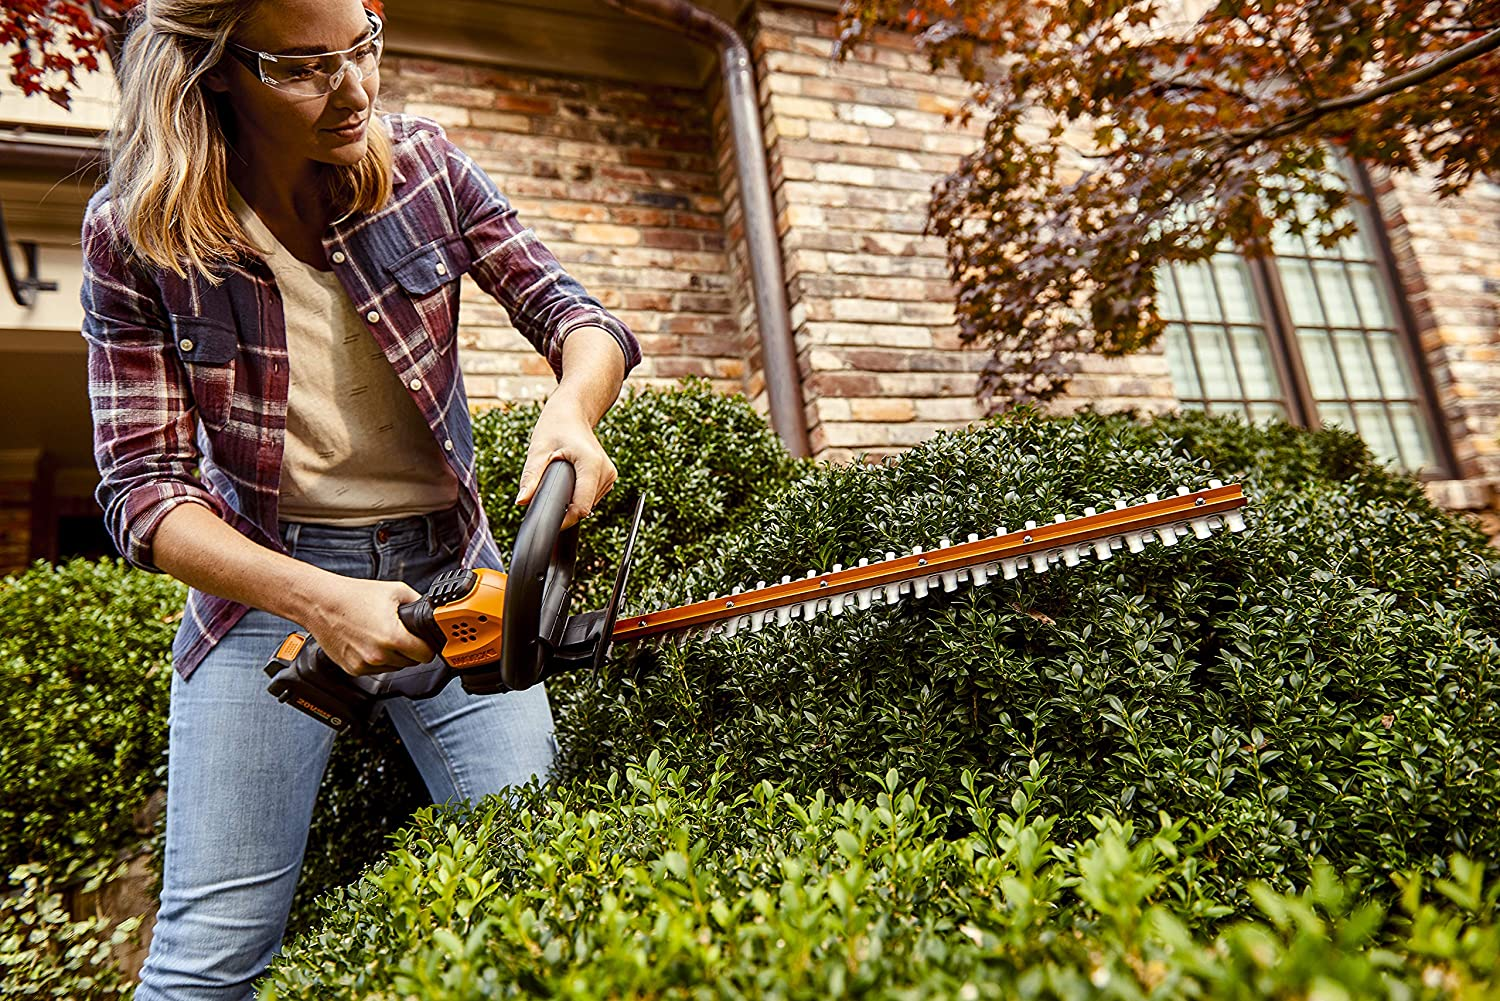 Worx WG261 Power Share Cordless Hedge Trimmer blade size